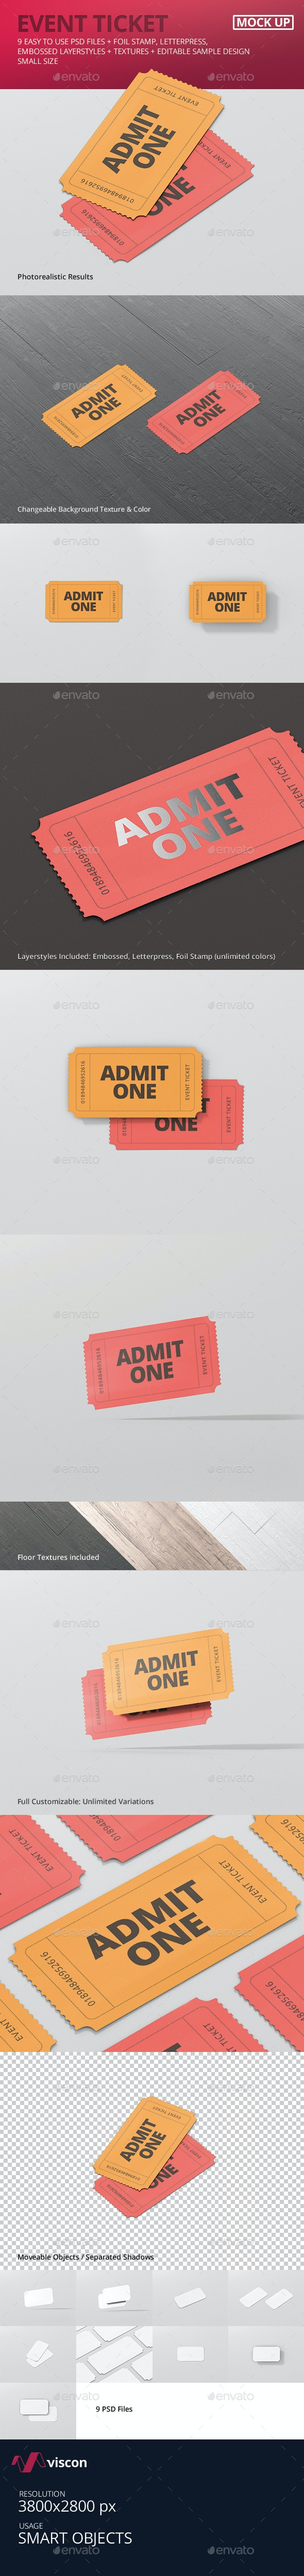 Event Ticket Mockup - Small Size - Miscellaneous Print